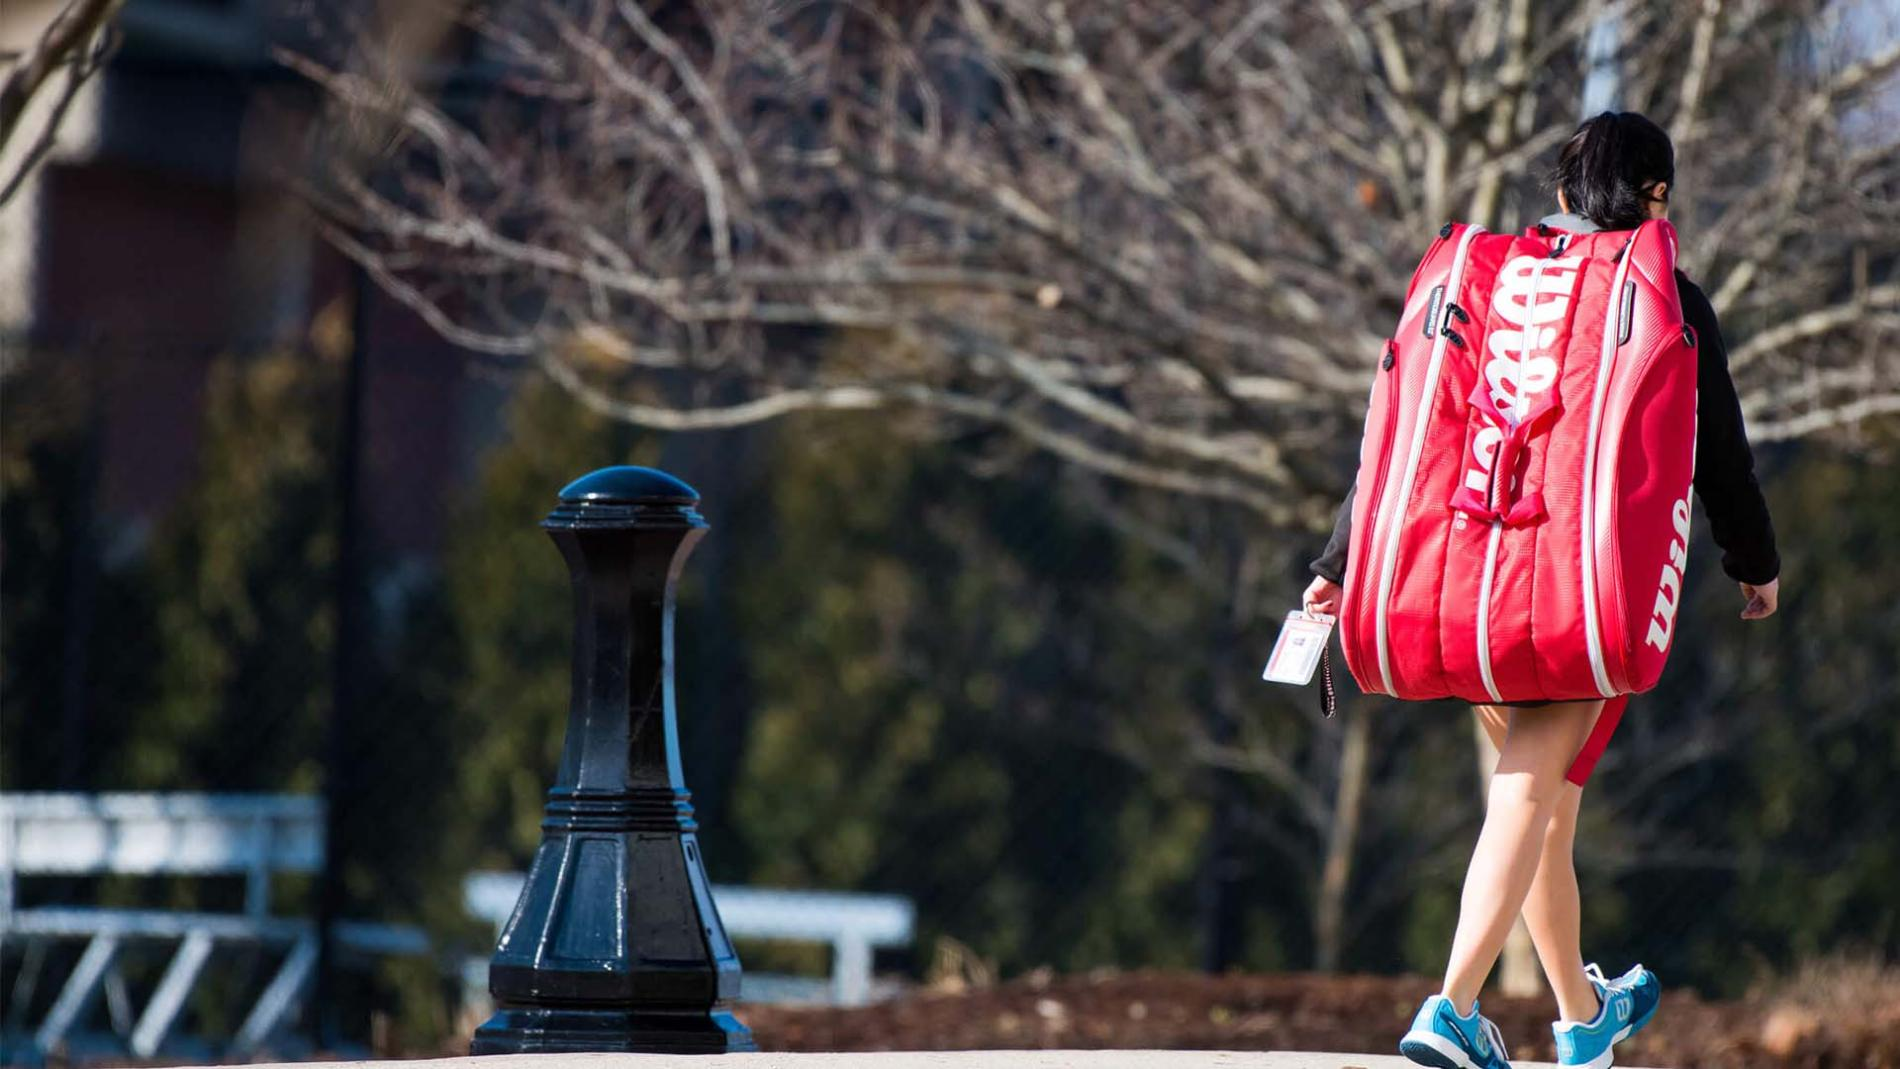 A student walks across the Springfield College campus while lugging a large sports bag on her back.